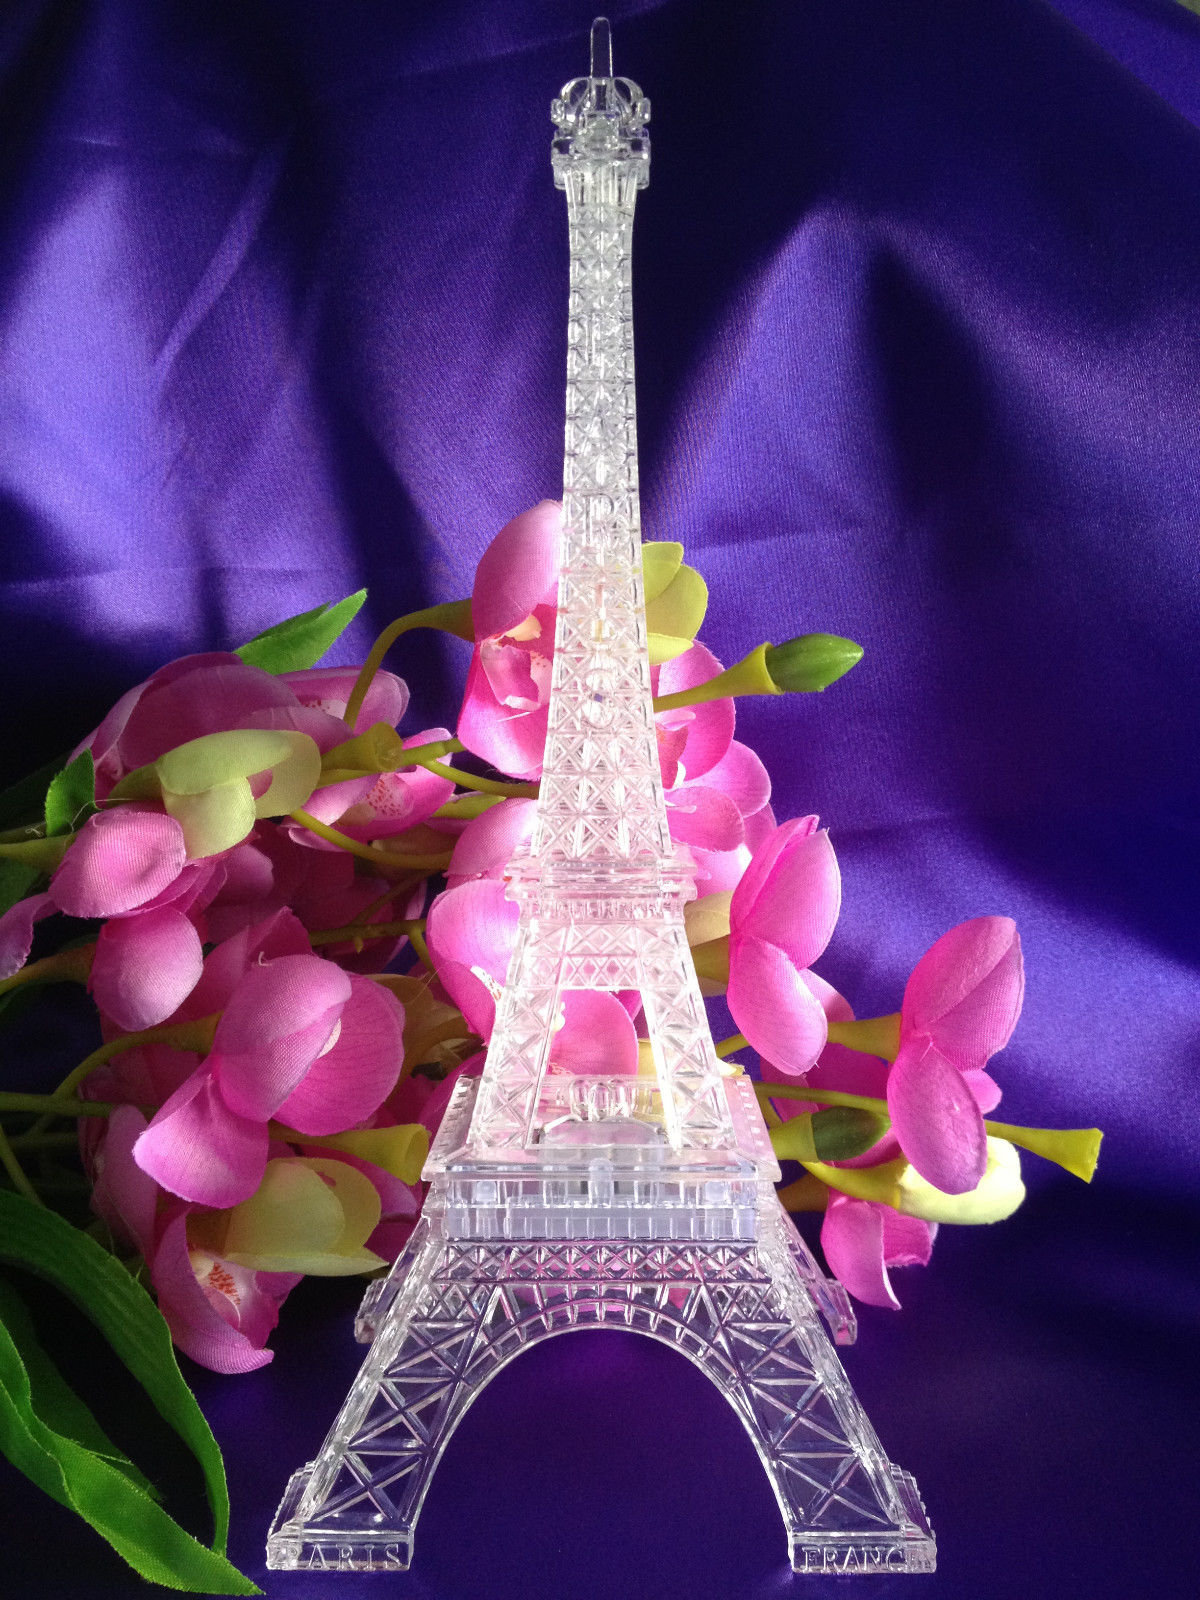 Large Eiffel Tower Statue | Eiffel Tower Decor for Bedroom | Eiffel Tower Centerpieces